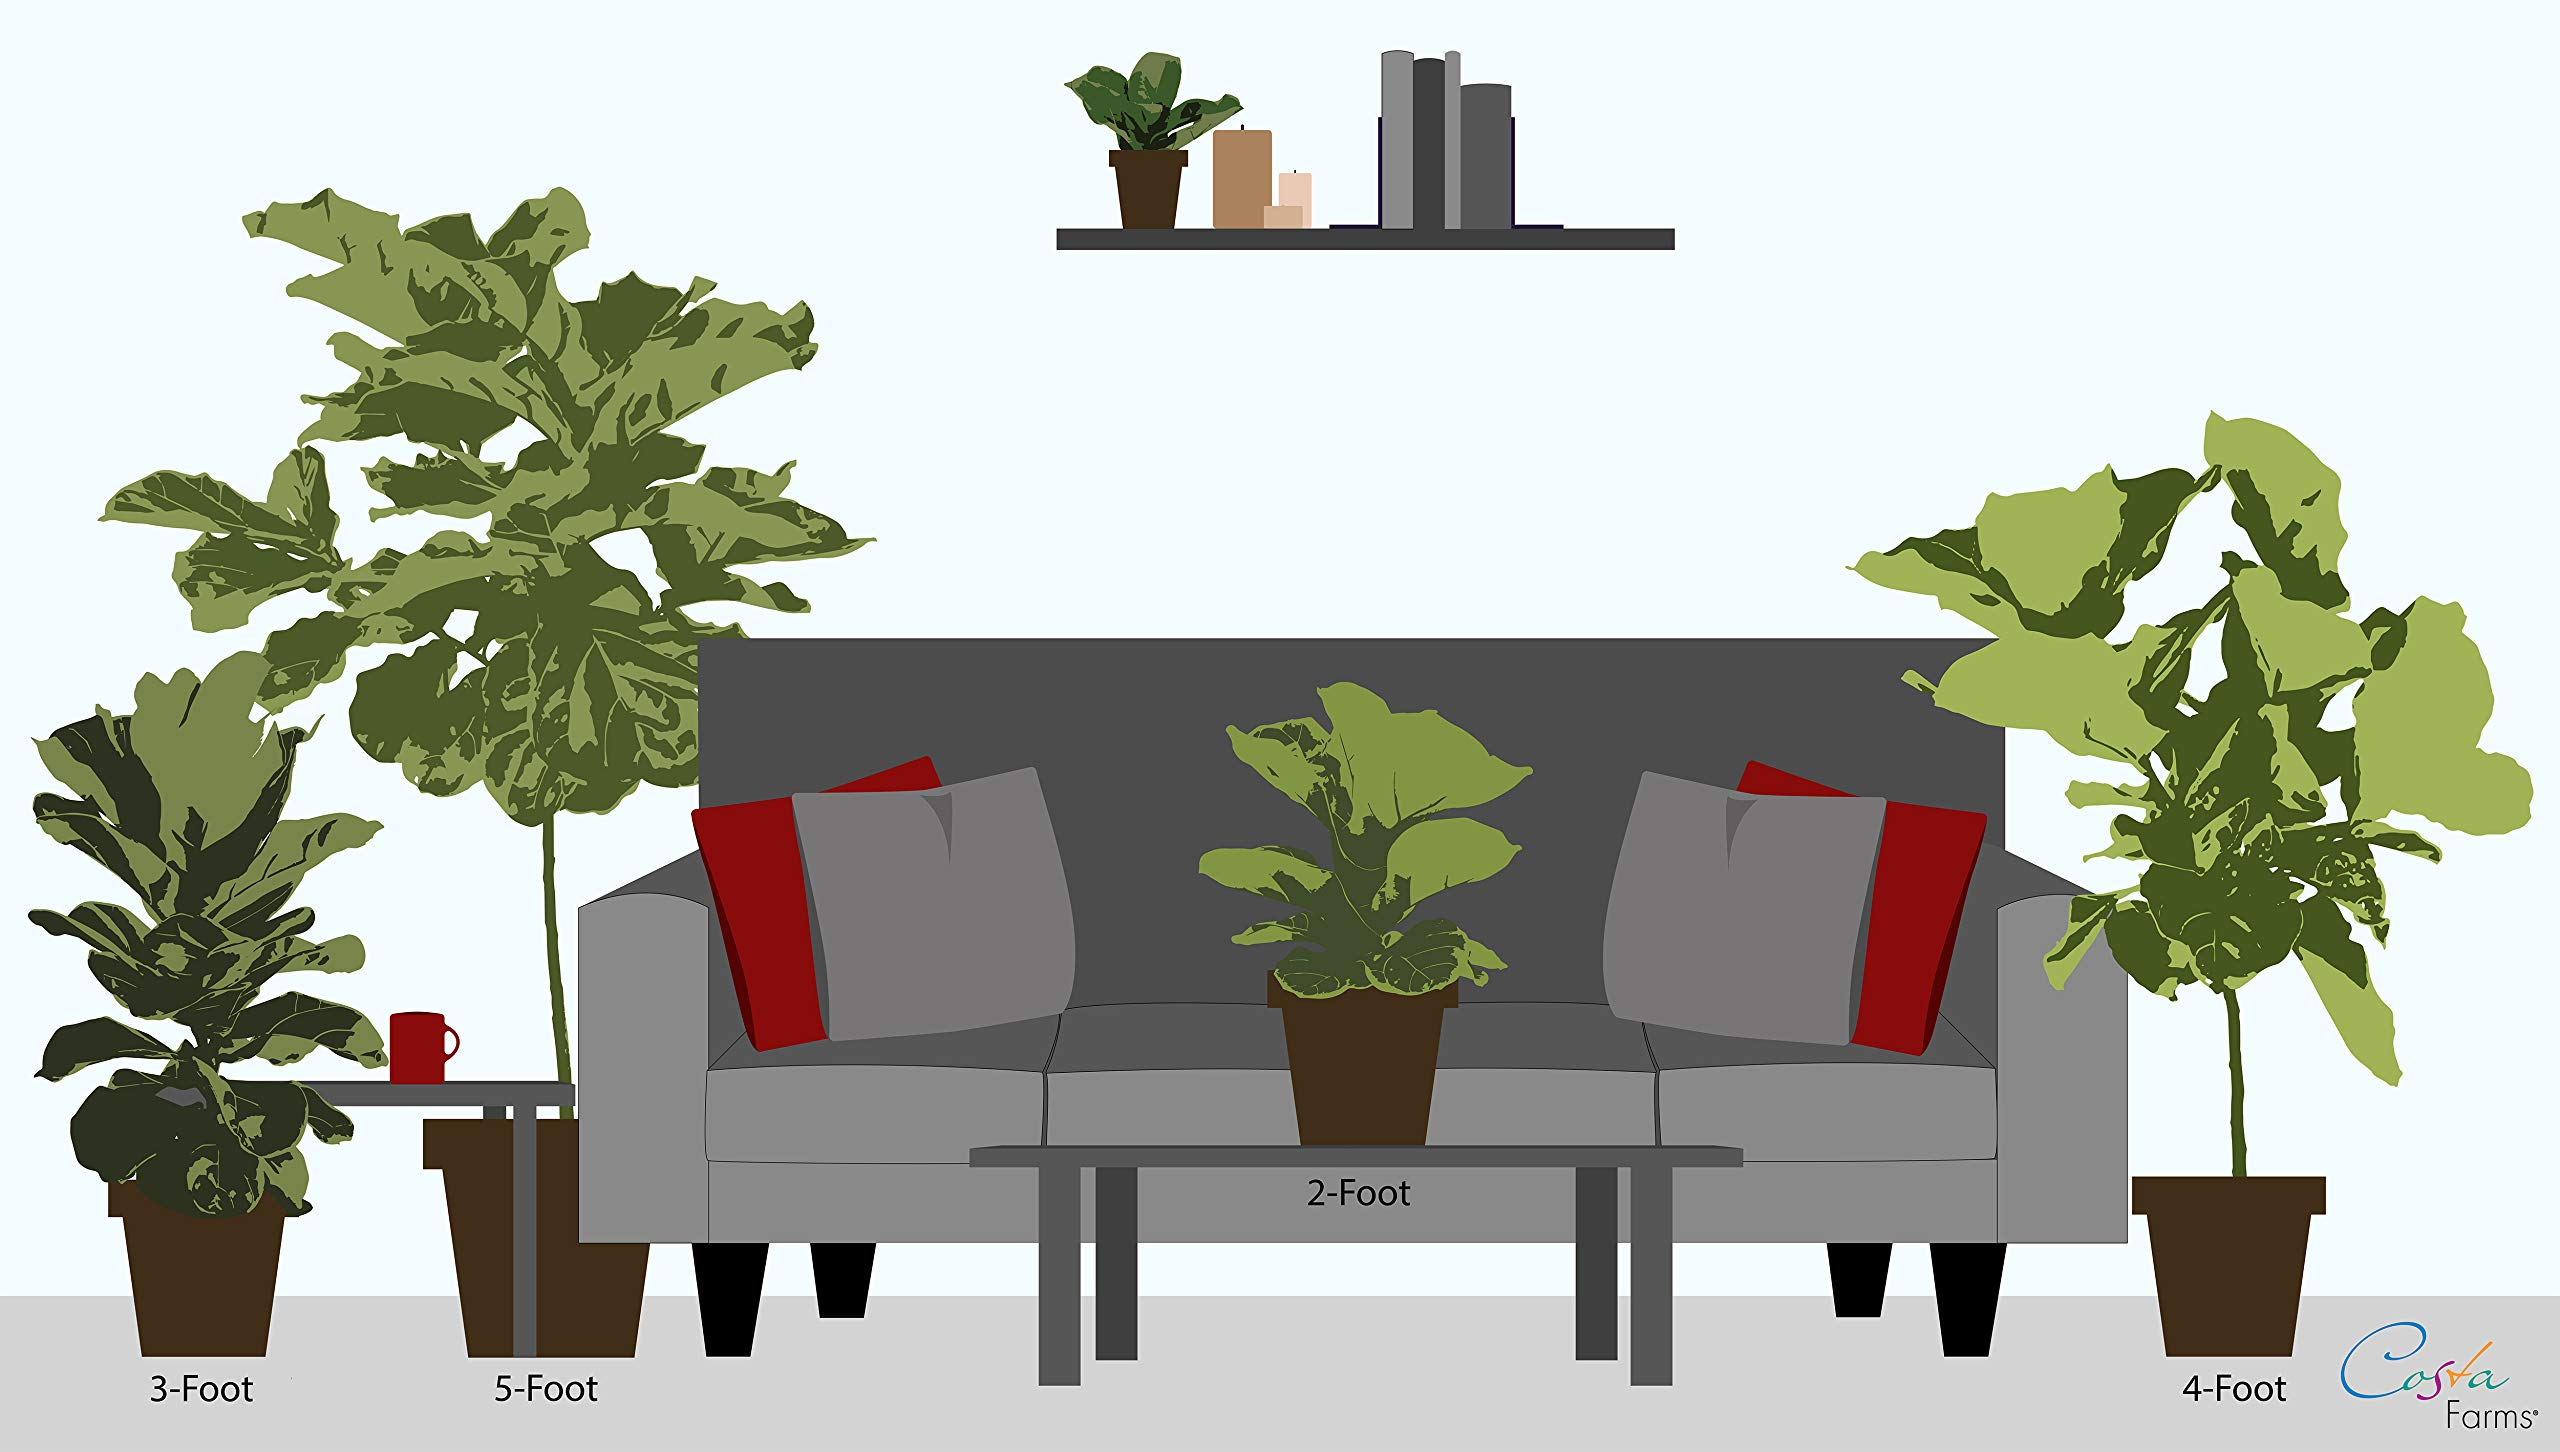 Costa Farms Live Ficus Lyrata, Fiddle-Leaf Fig, Floor Plant, 4-Feet Tall, Ships in Seagrass Basket, White-Natural, Fresh From Our Farm by Costa Farms (Image #3)